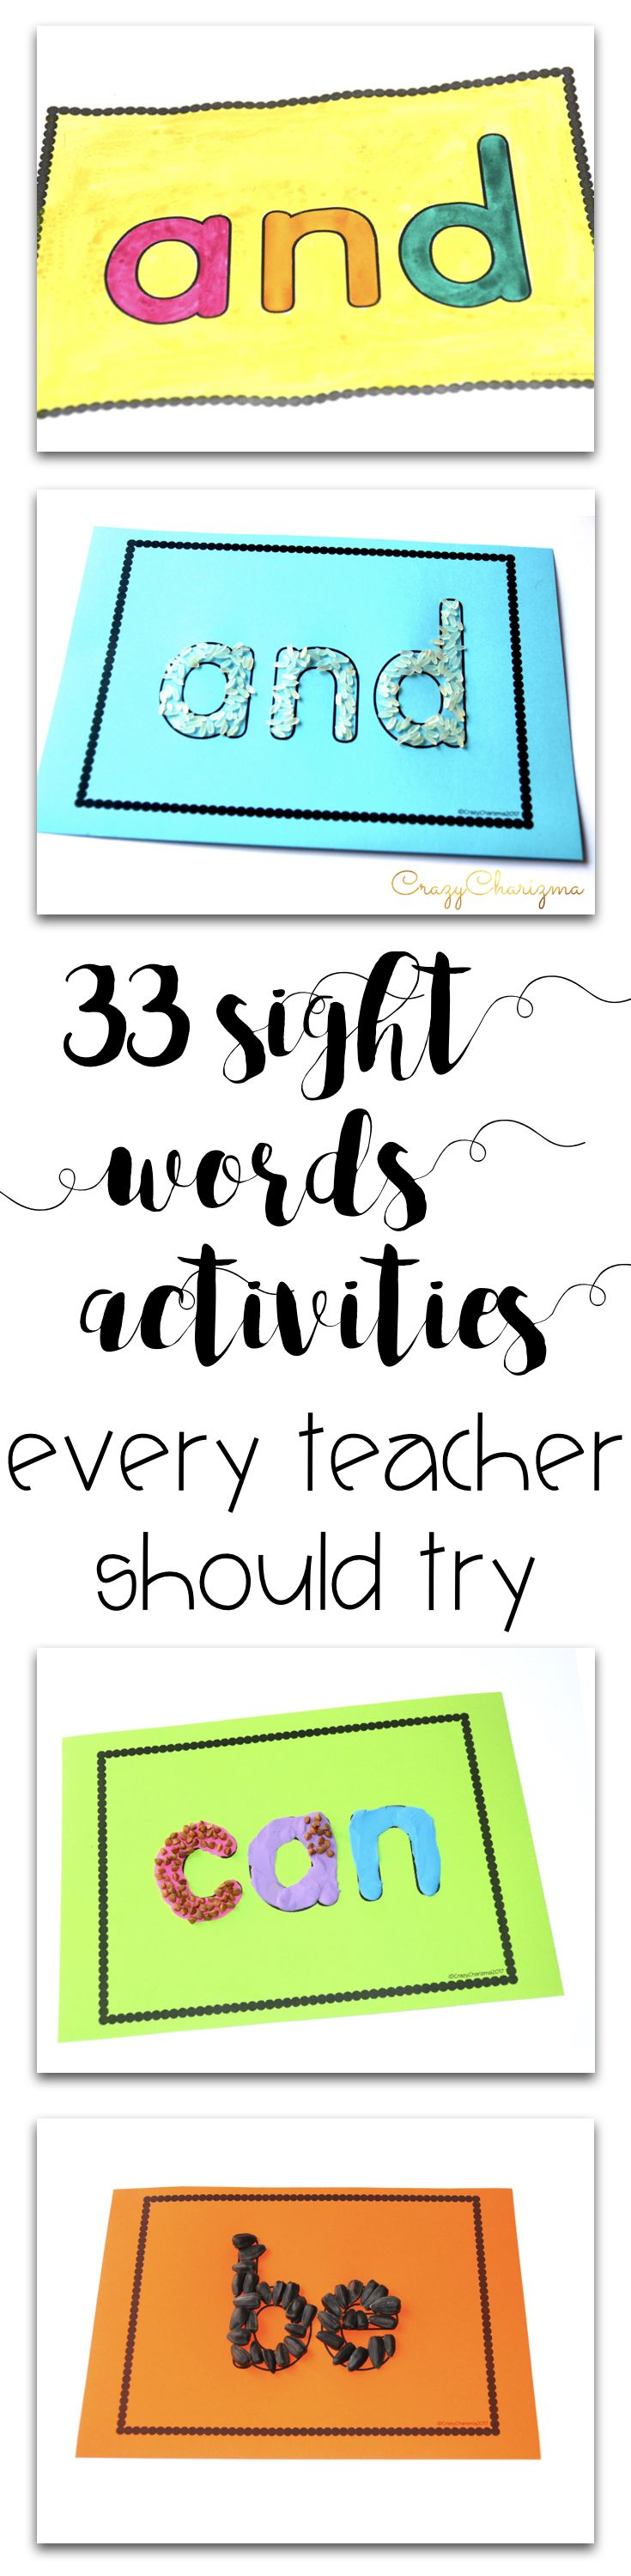 Worksheet Preschool Words best 25 preschool sight words ideas on pinterest kindergarten 33 activities every teacher should try freebies included activities